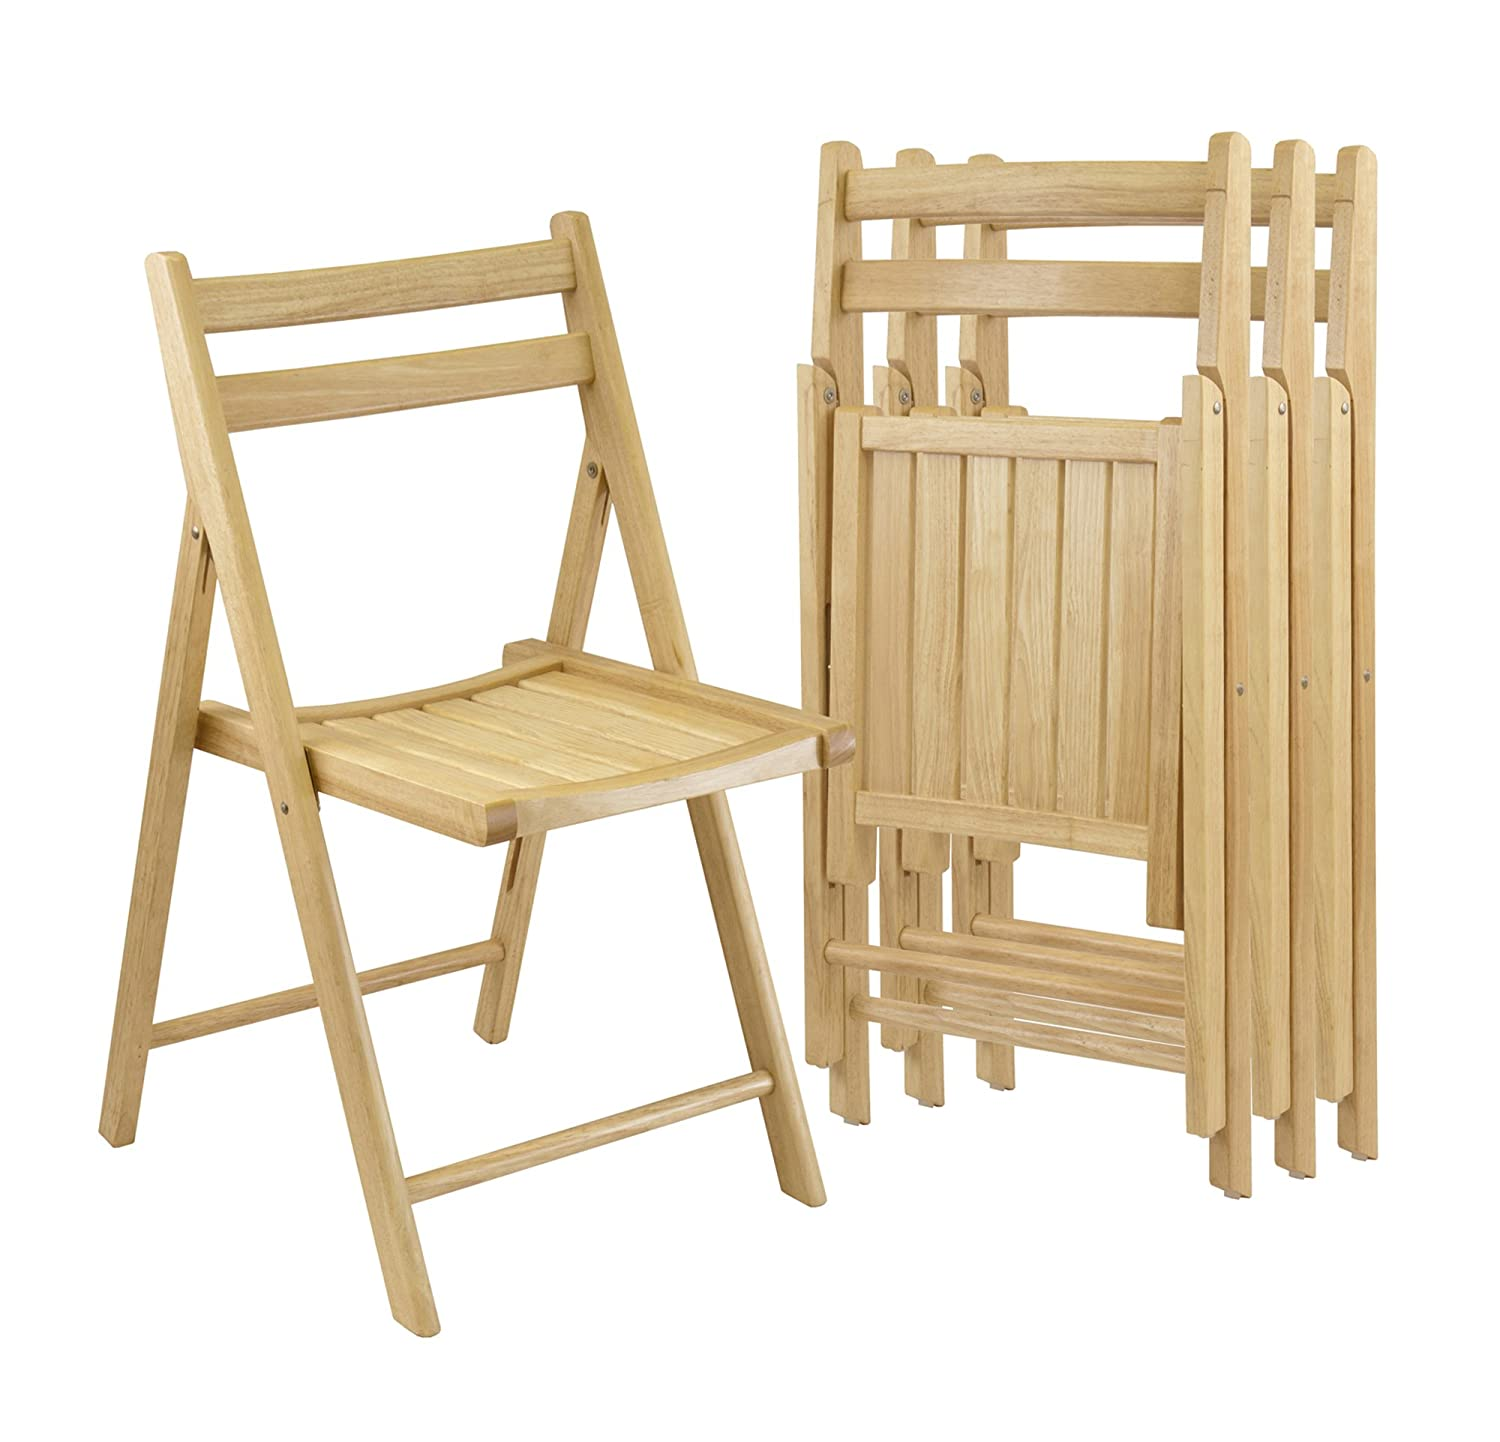 Amazon Winsome Wood Folding Chairs Natural Finish Set of 4